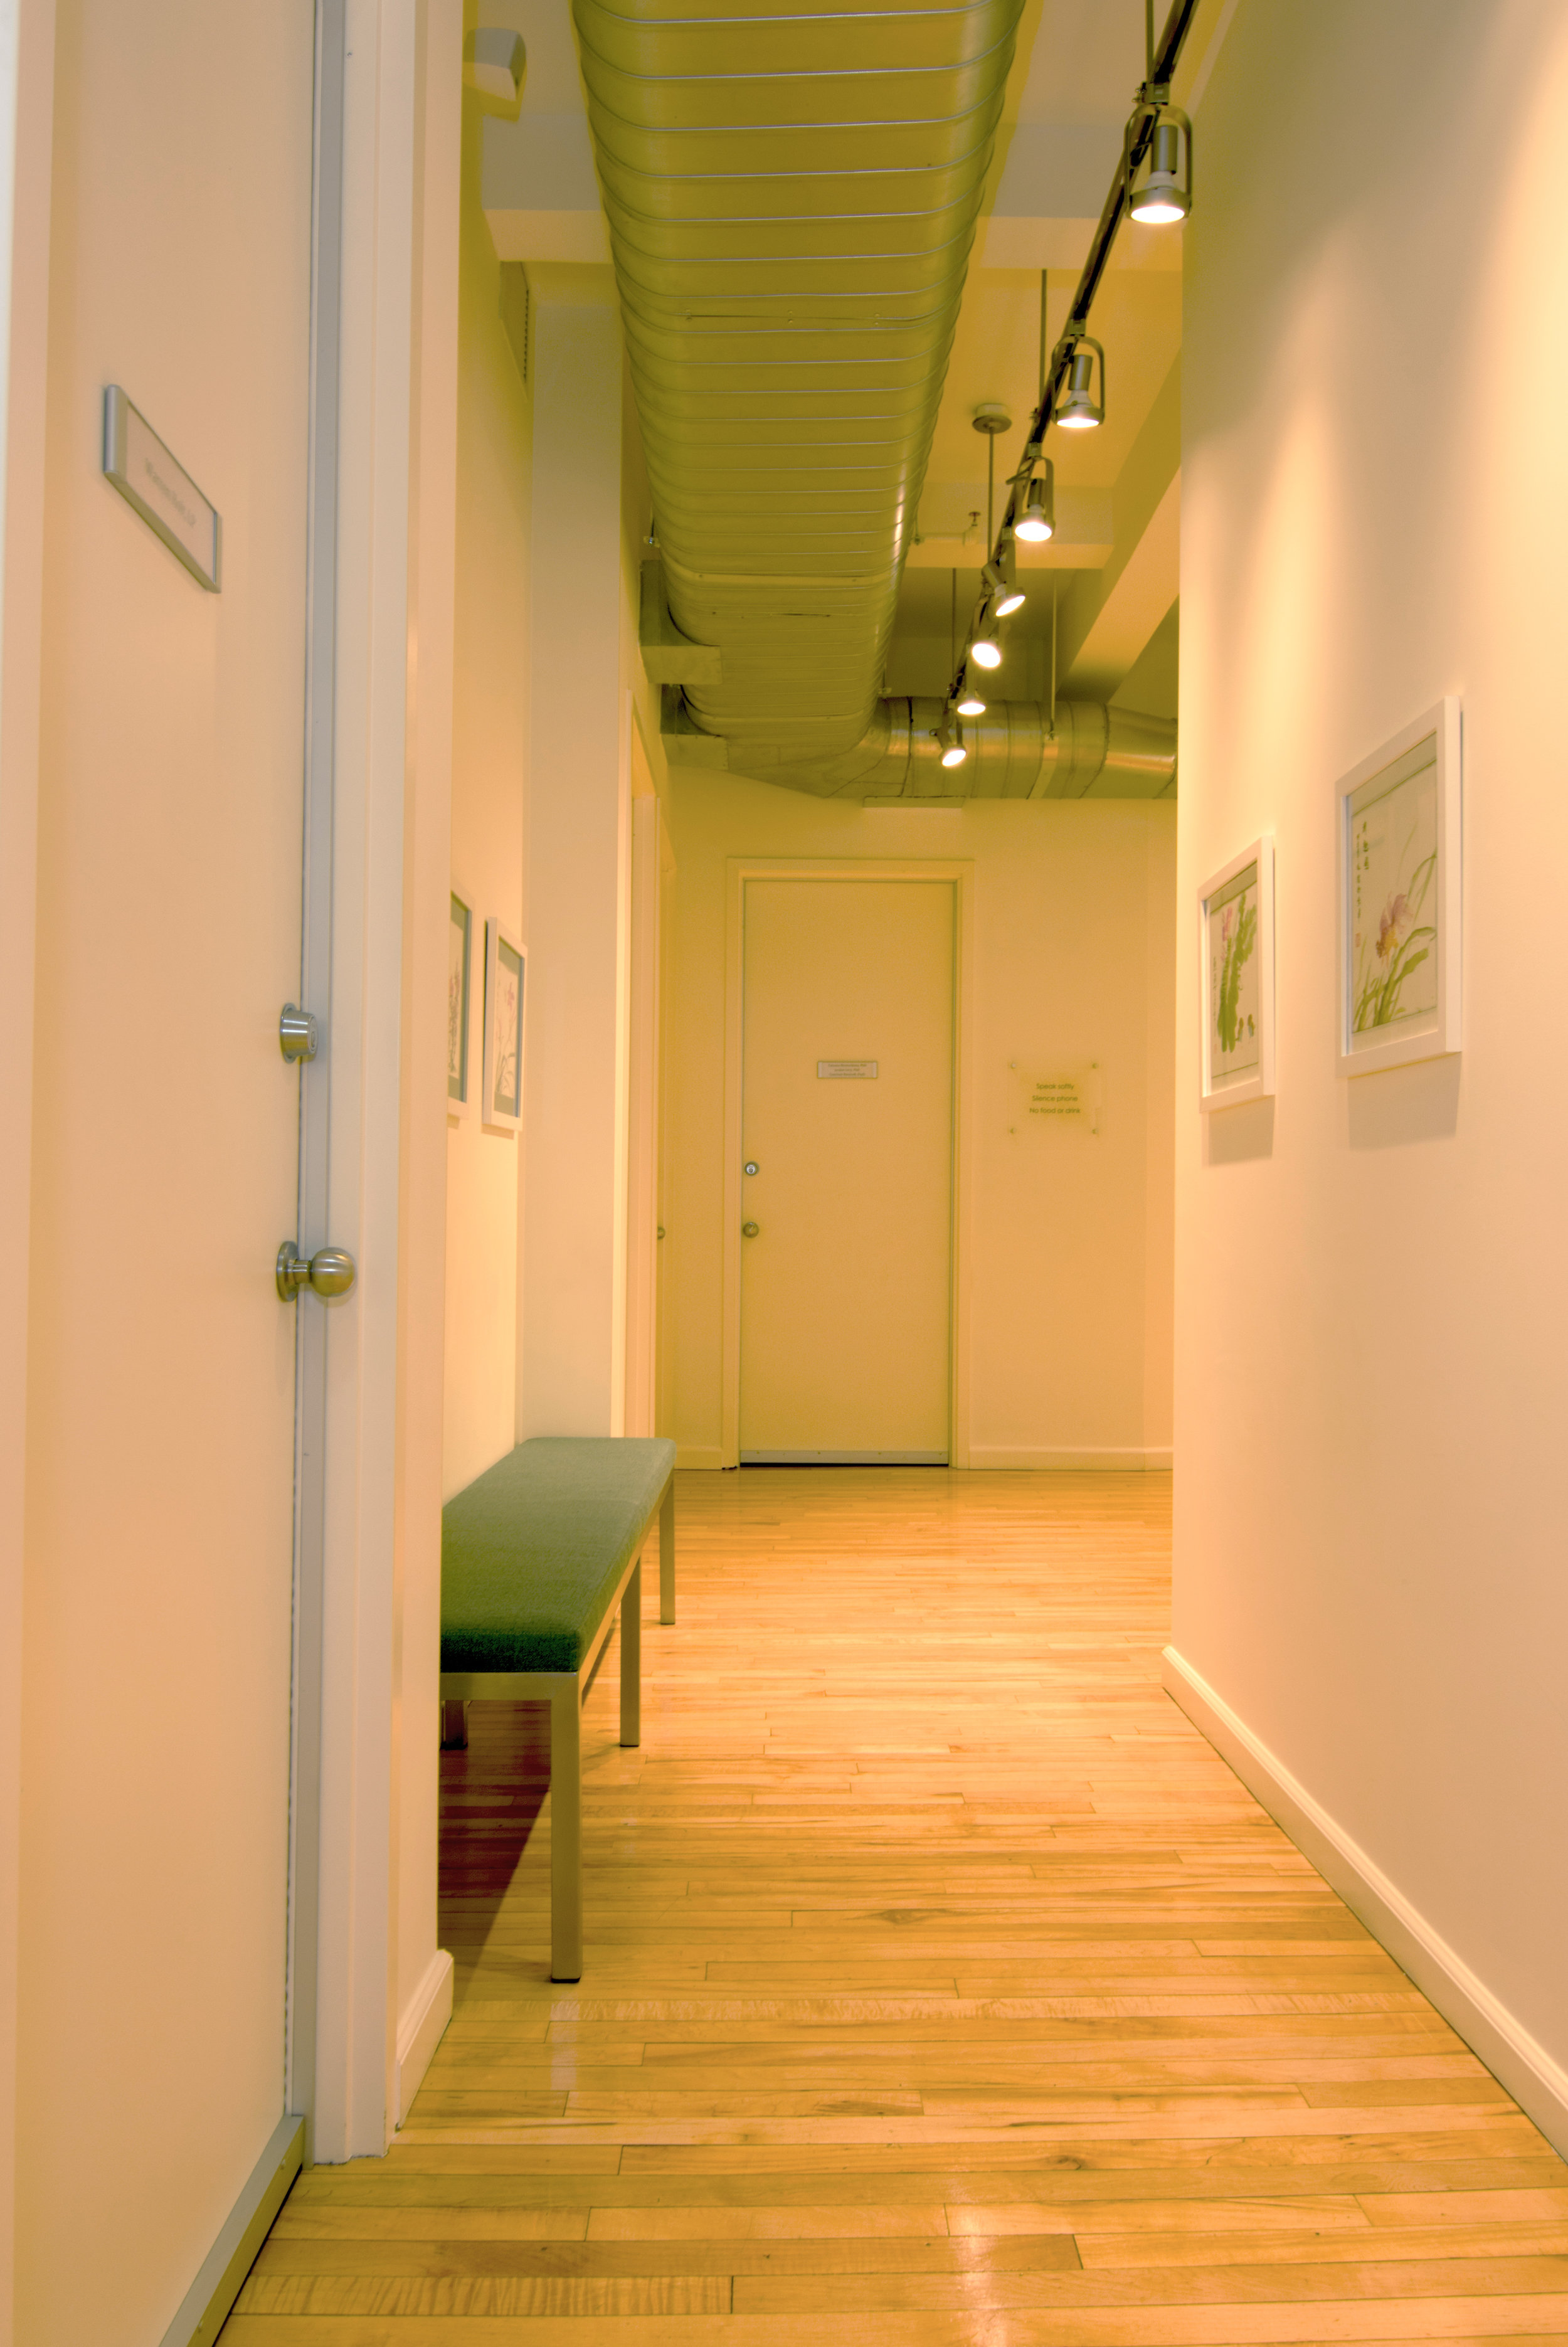 serene-offices-therapy-office-flatiron-21st-street-waiting-room-hallway.jpg